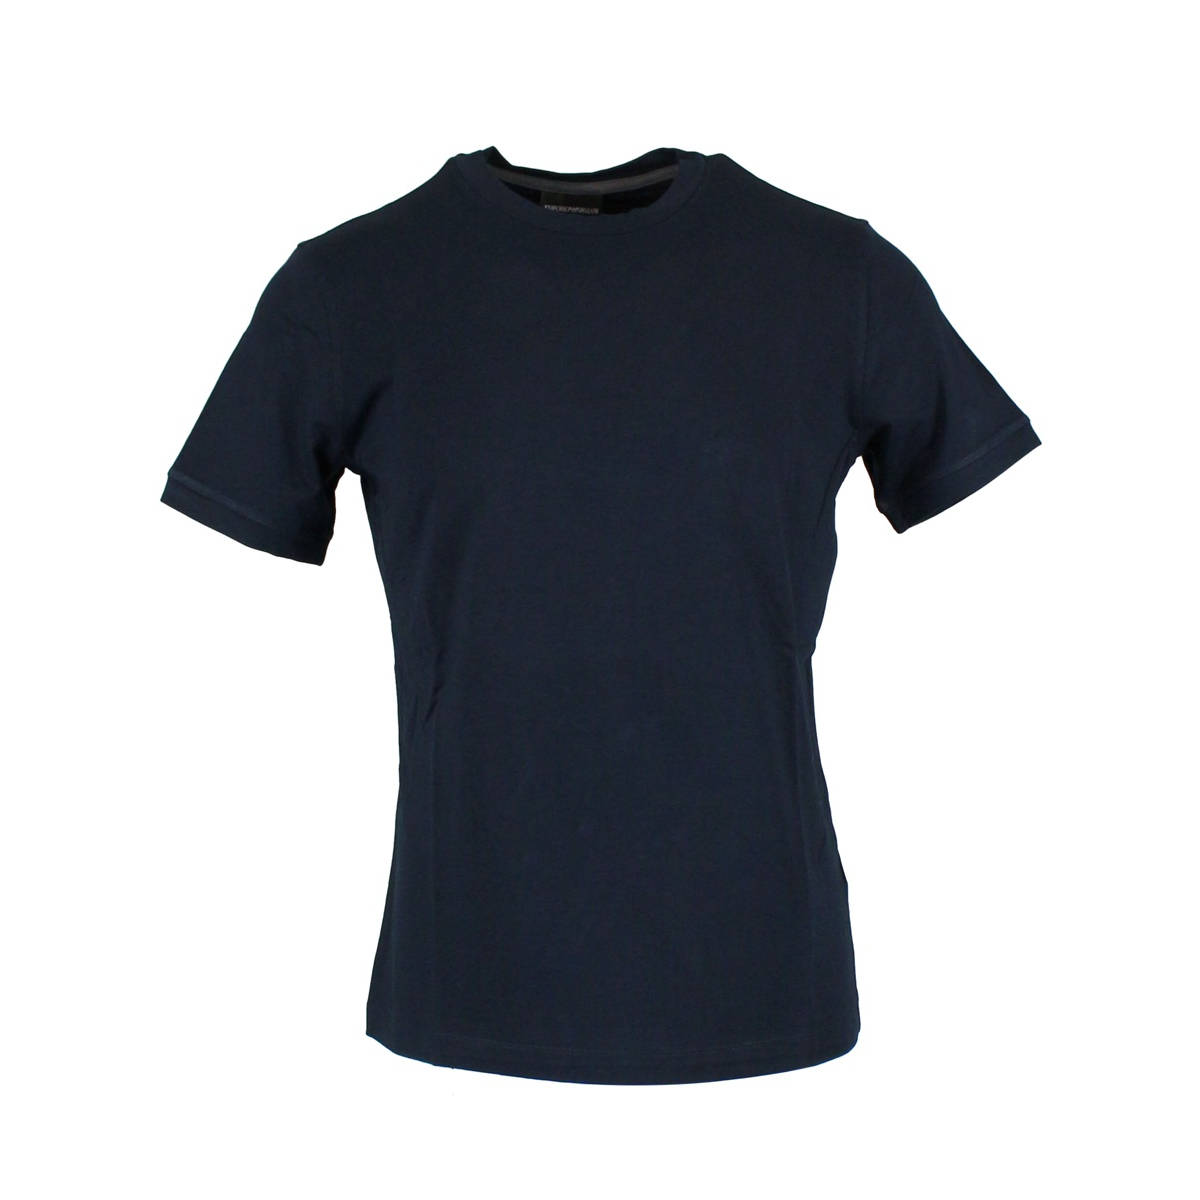 T-shirt in stretch viscose Navy Emporio Armani